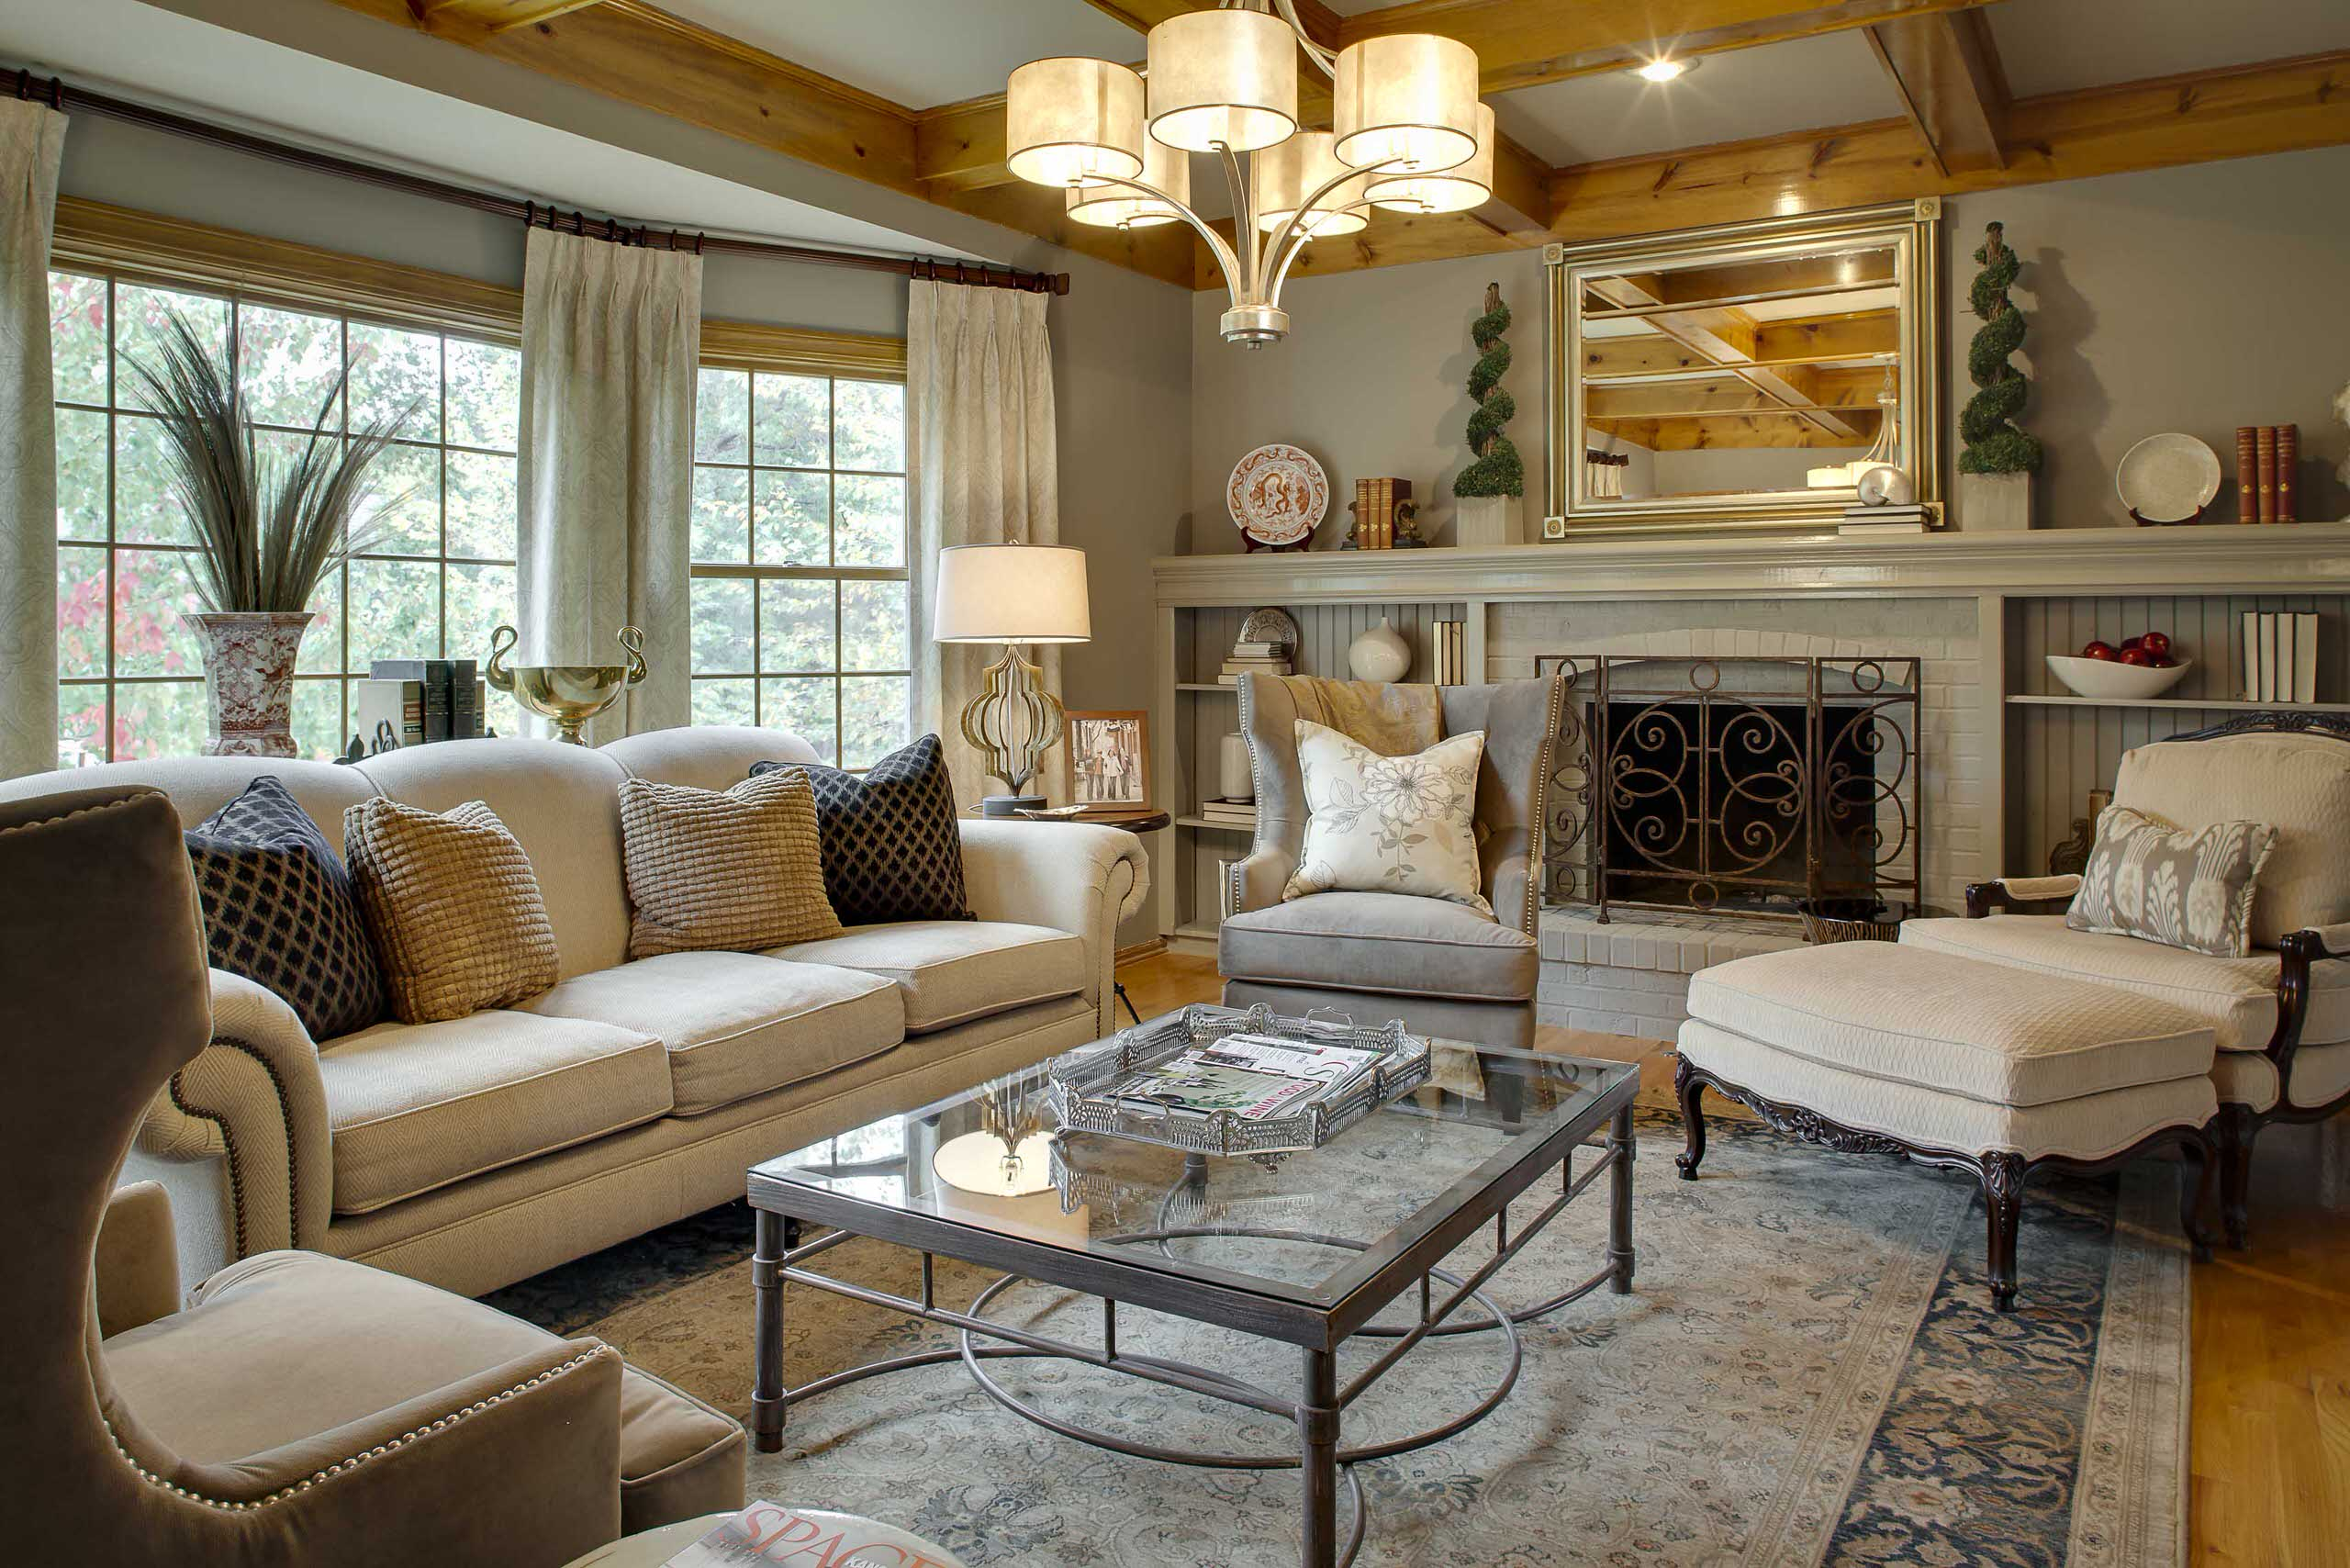 75 Beautiful Living Room With A Brick Fireplace Pictures Ideas February 2021 Houzz